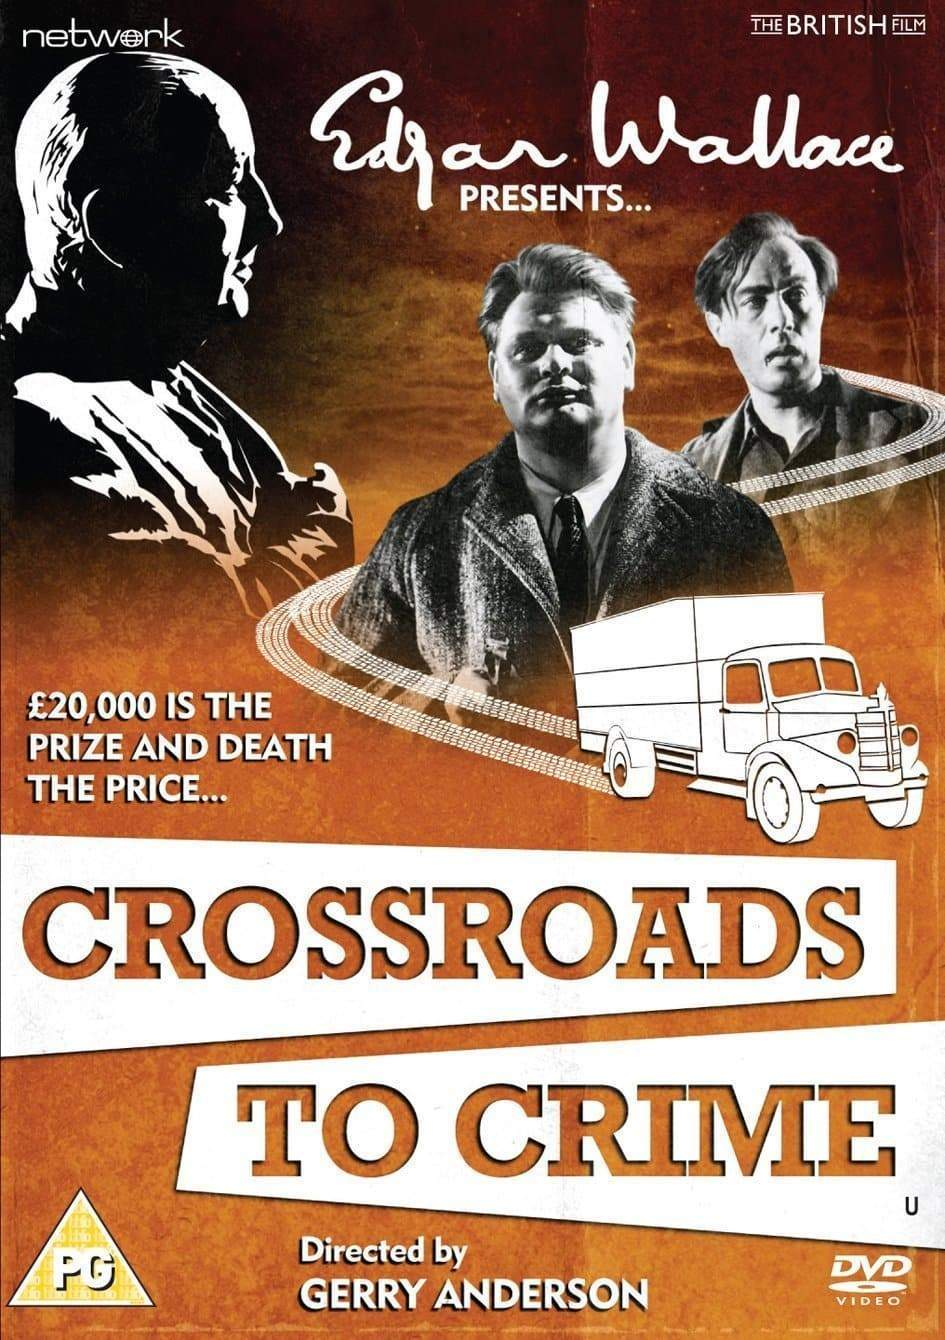 Edgar Wallace Presents: Crossroads to Crime [DVD](Region 2) - The Gerry Anderson Store